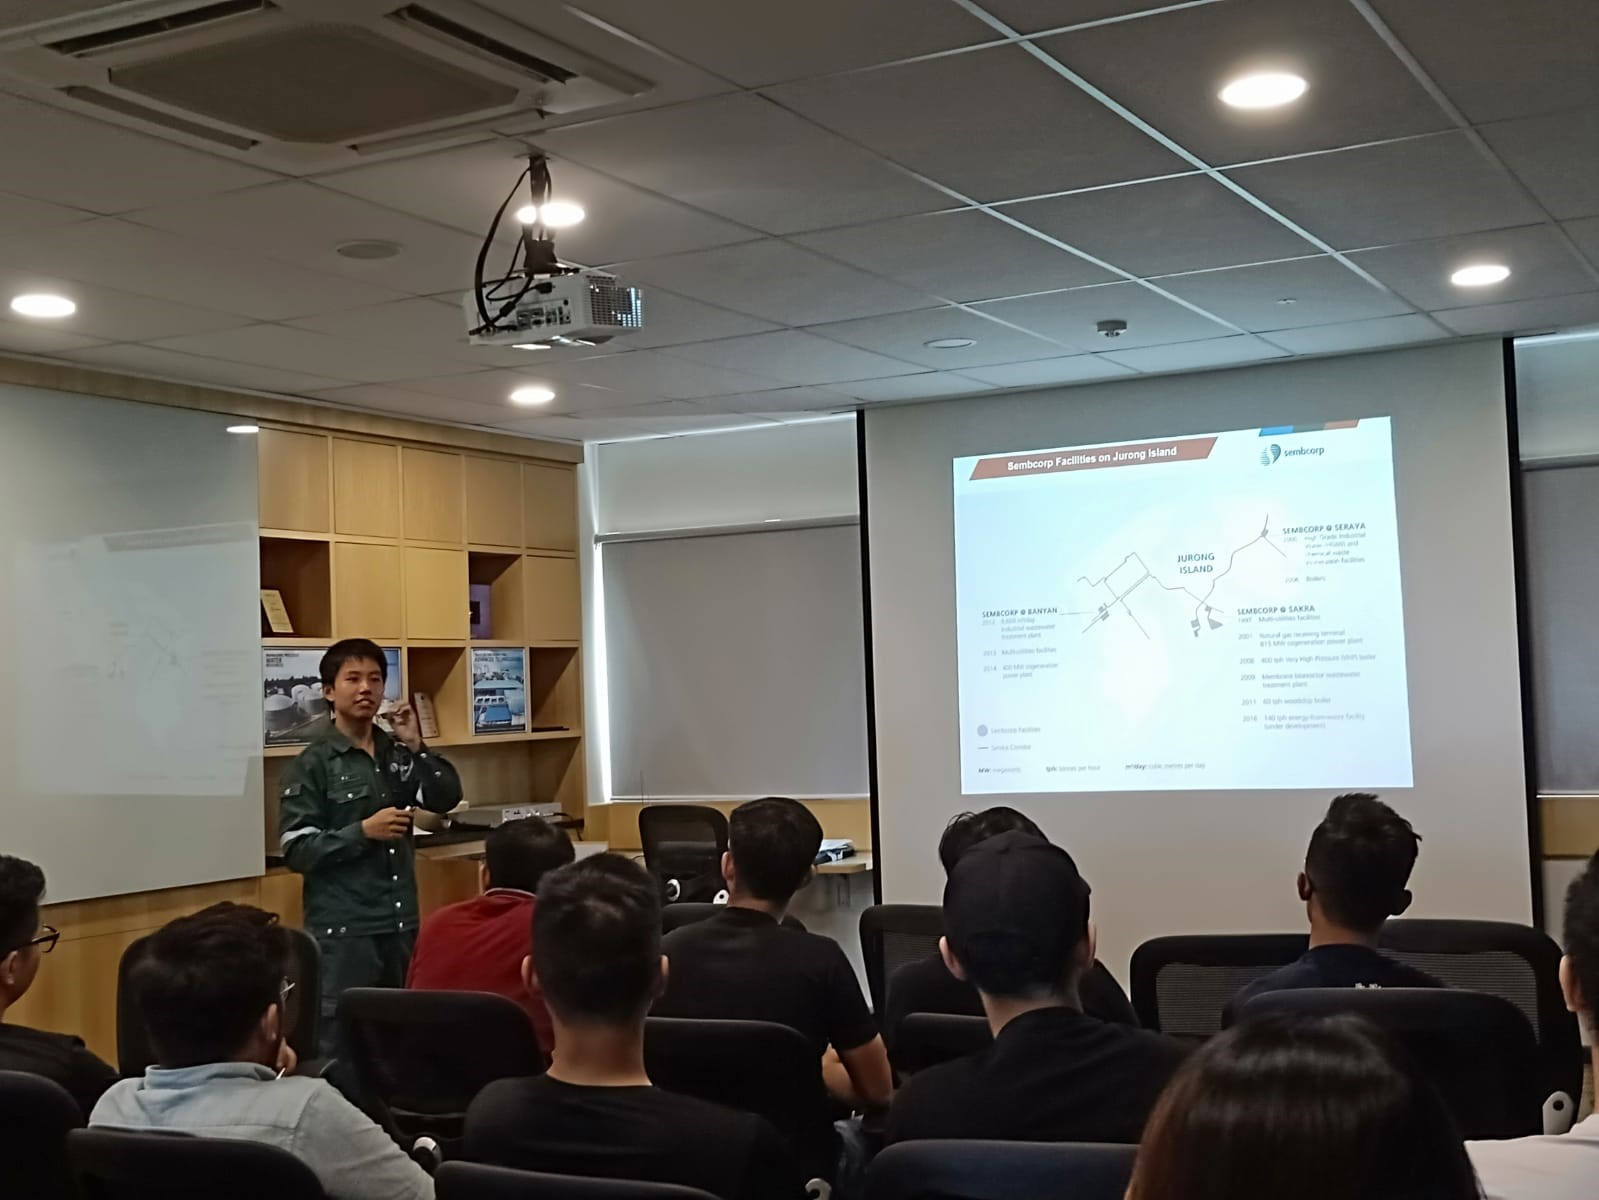 Sembcorp Industries Senior Engineer Ang Kang Jie sharing with students on operations at the Sembcorp Cogen @ Banyan Plant.